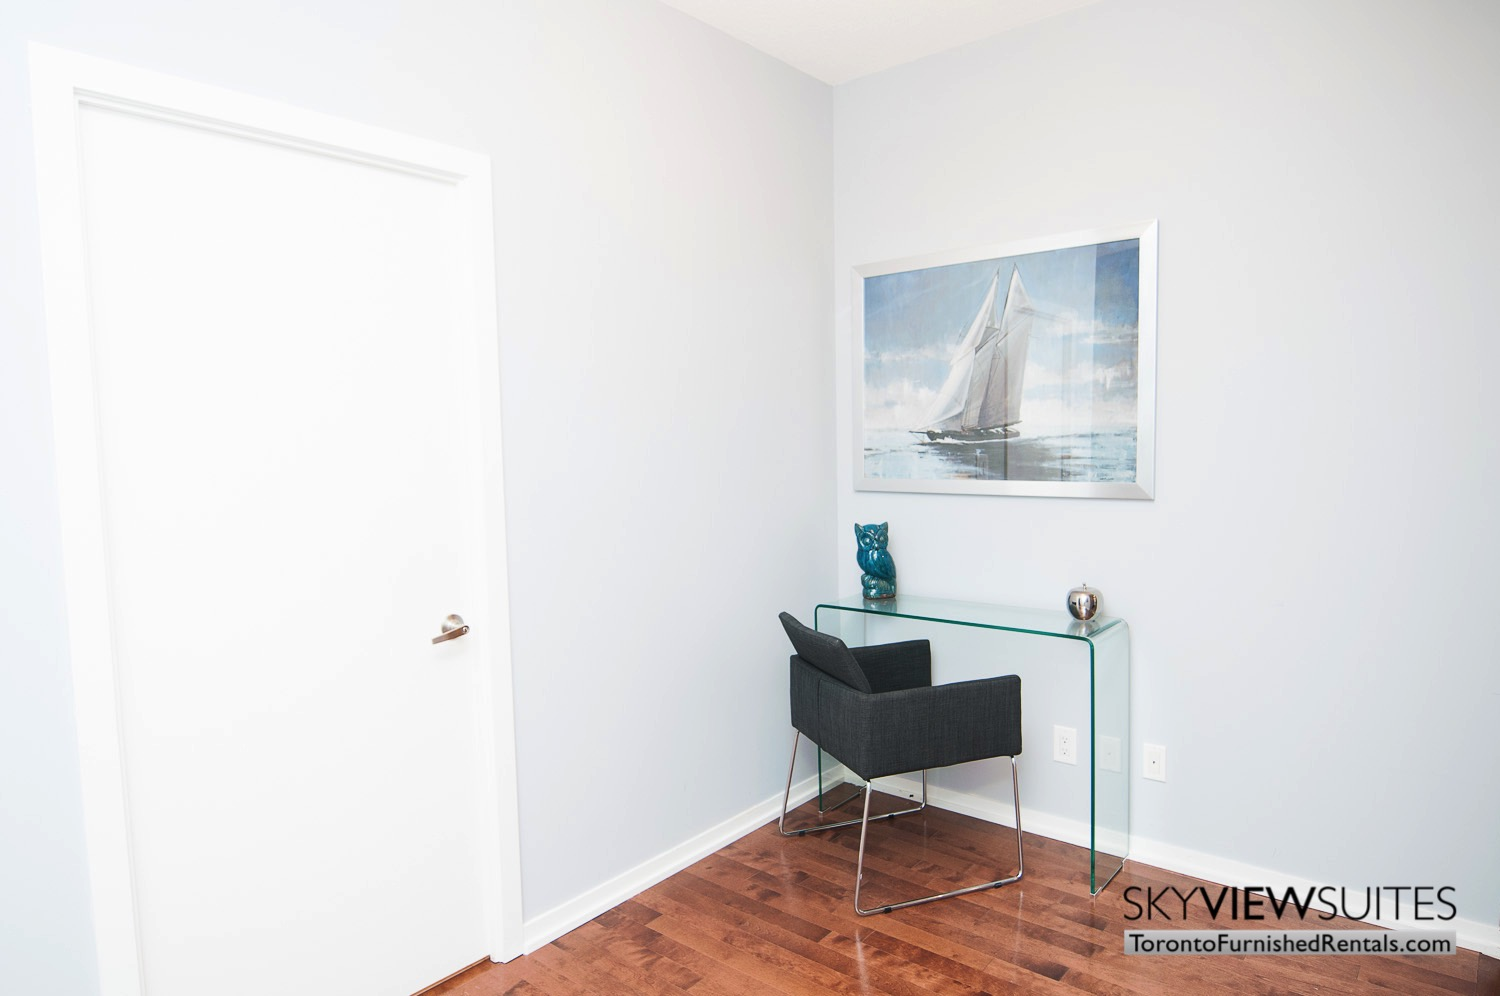 hort-term-rentals-toronto-living-room-maple-leaf-square